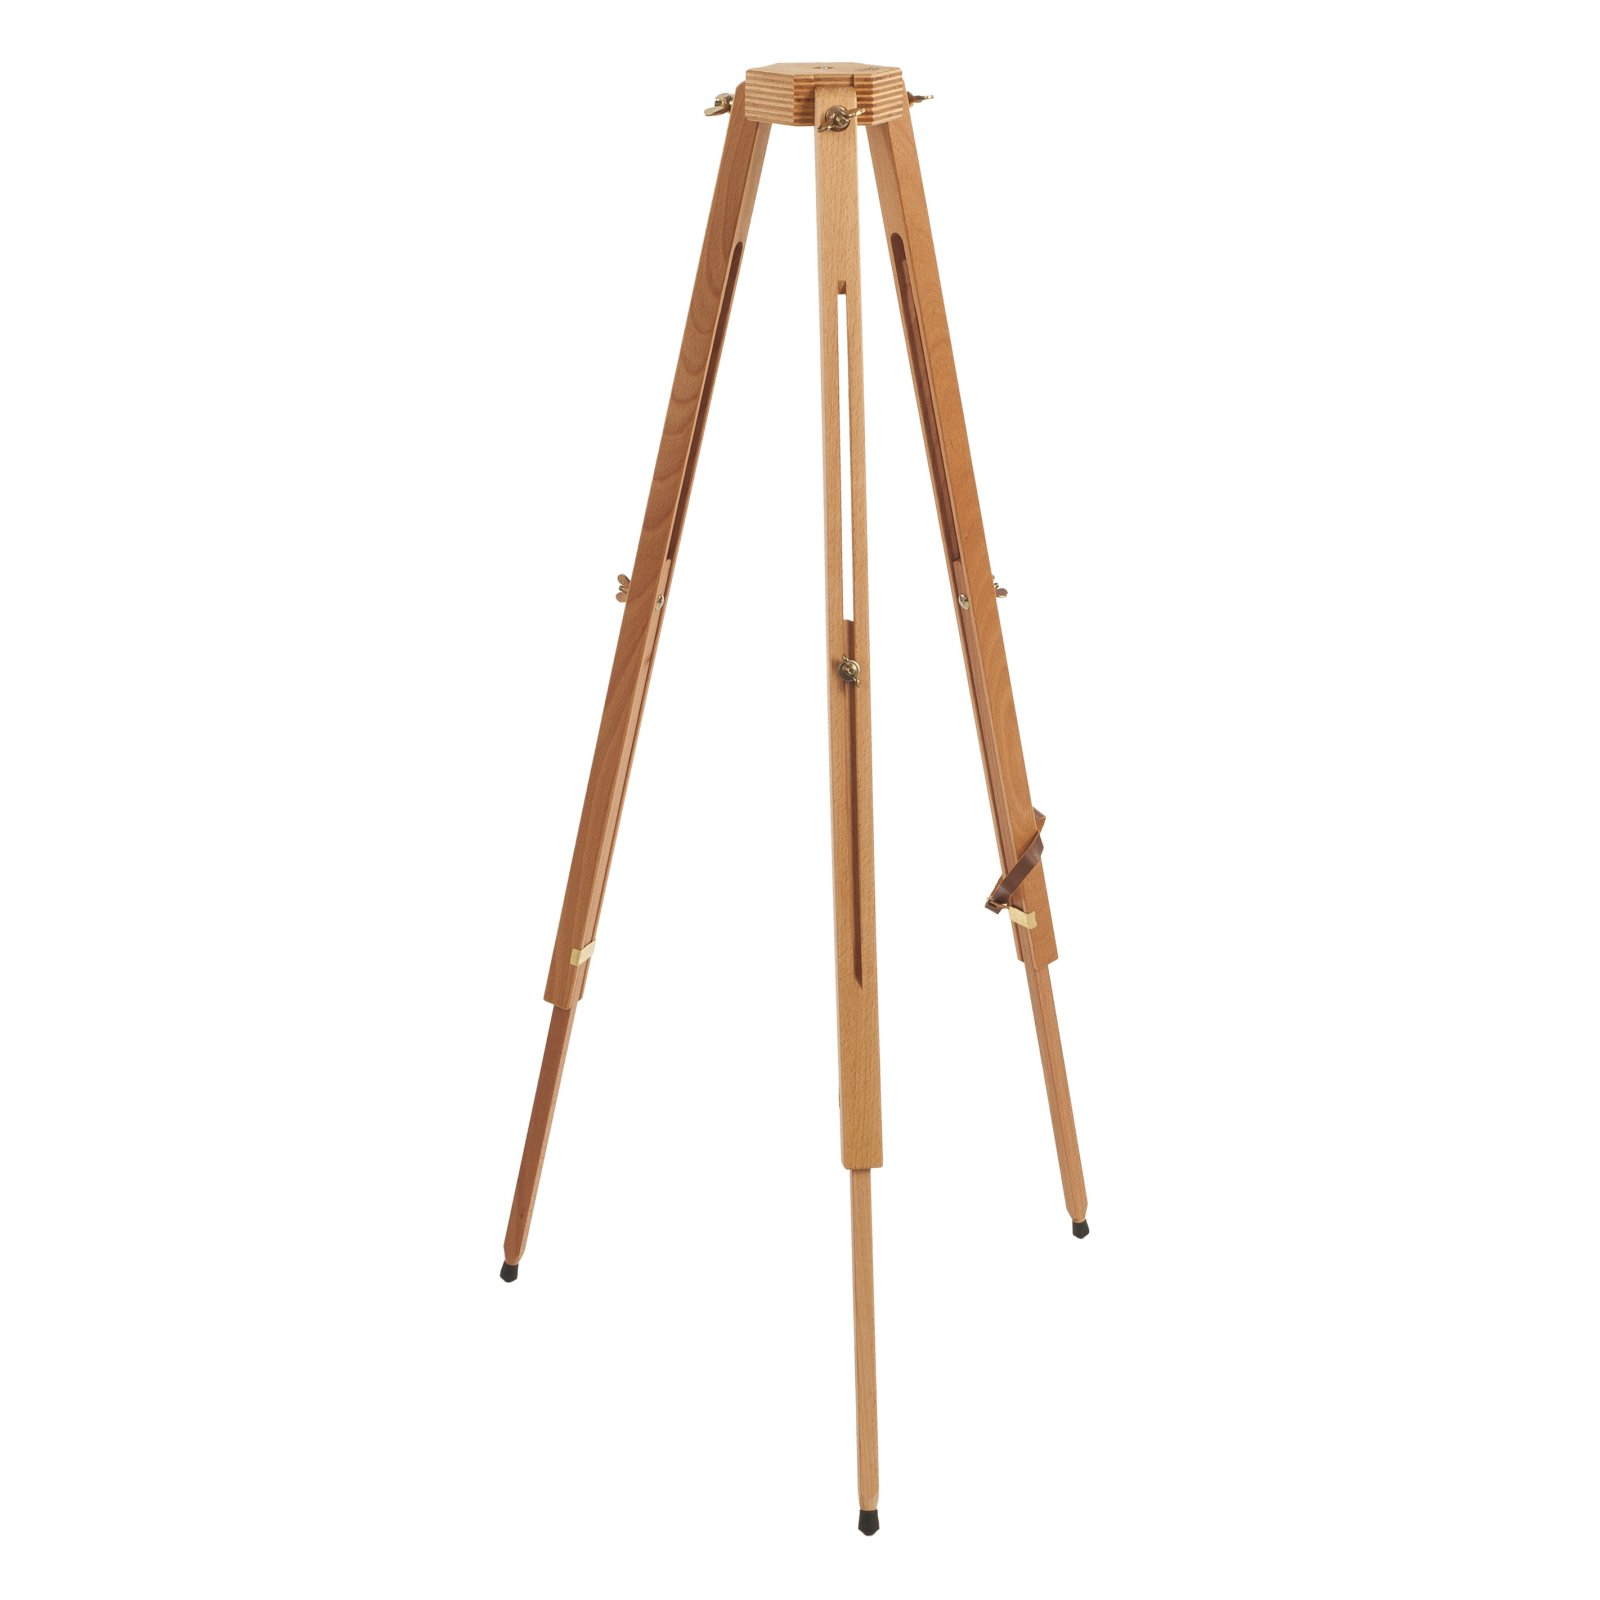 WOOD TRIPOD FOR MBM-105